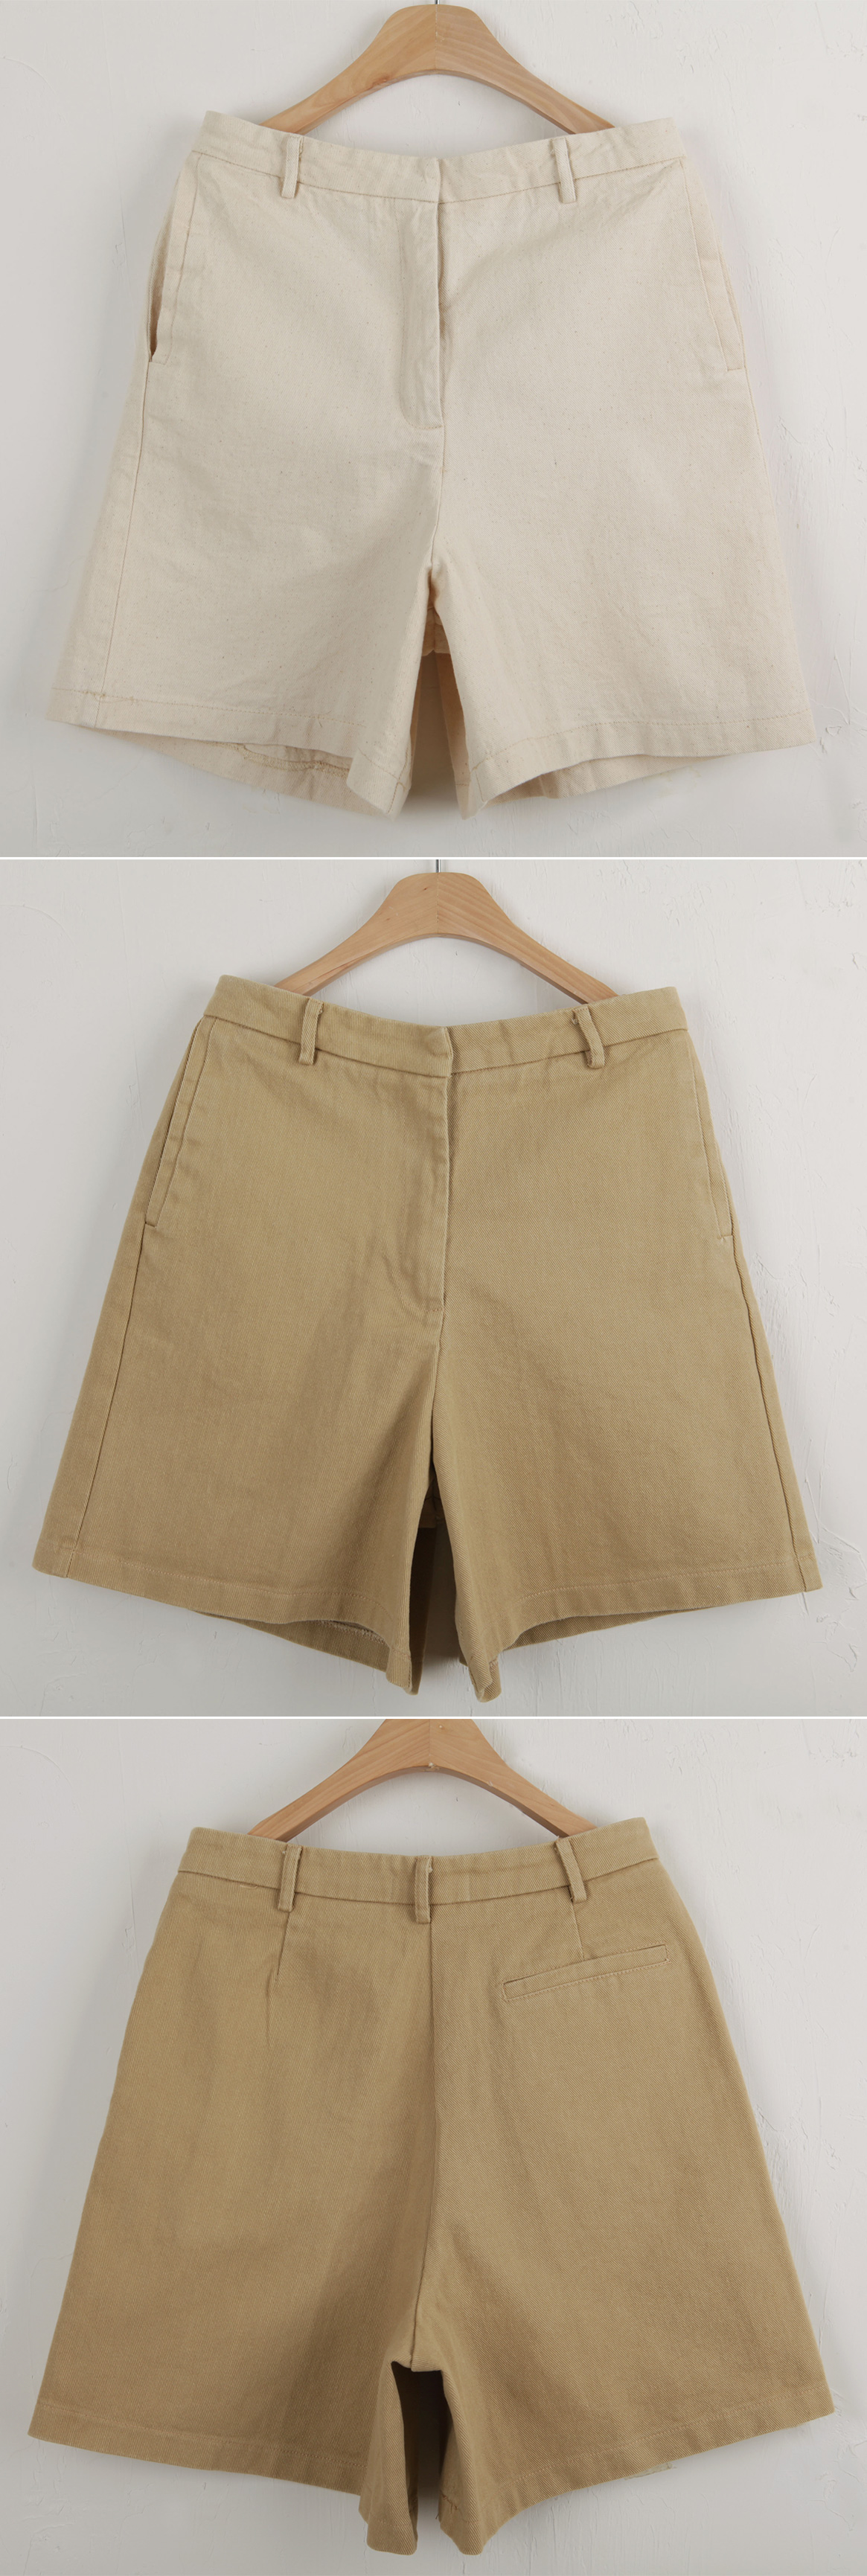 20% off Slim Wide Shorts